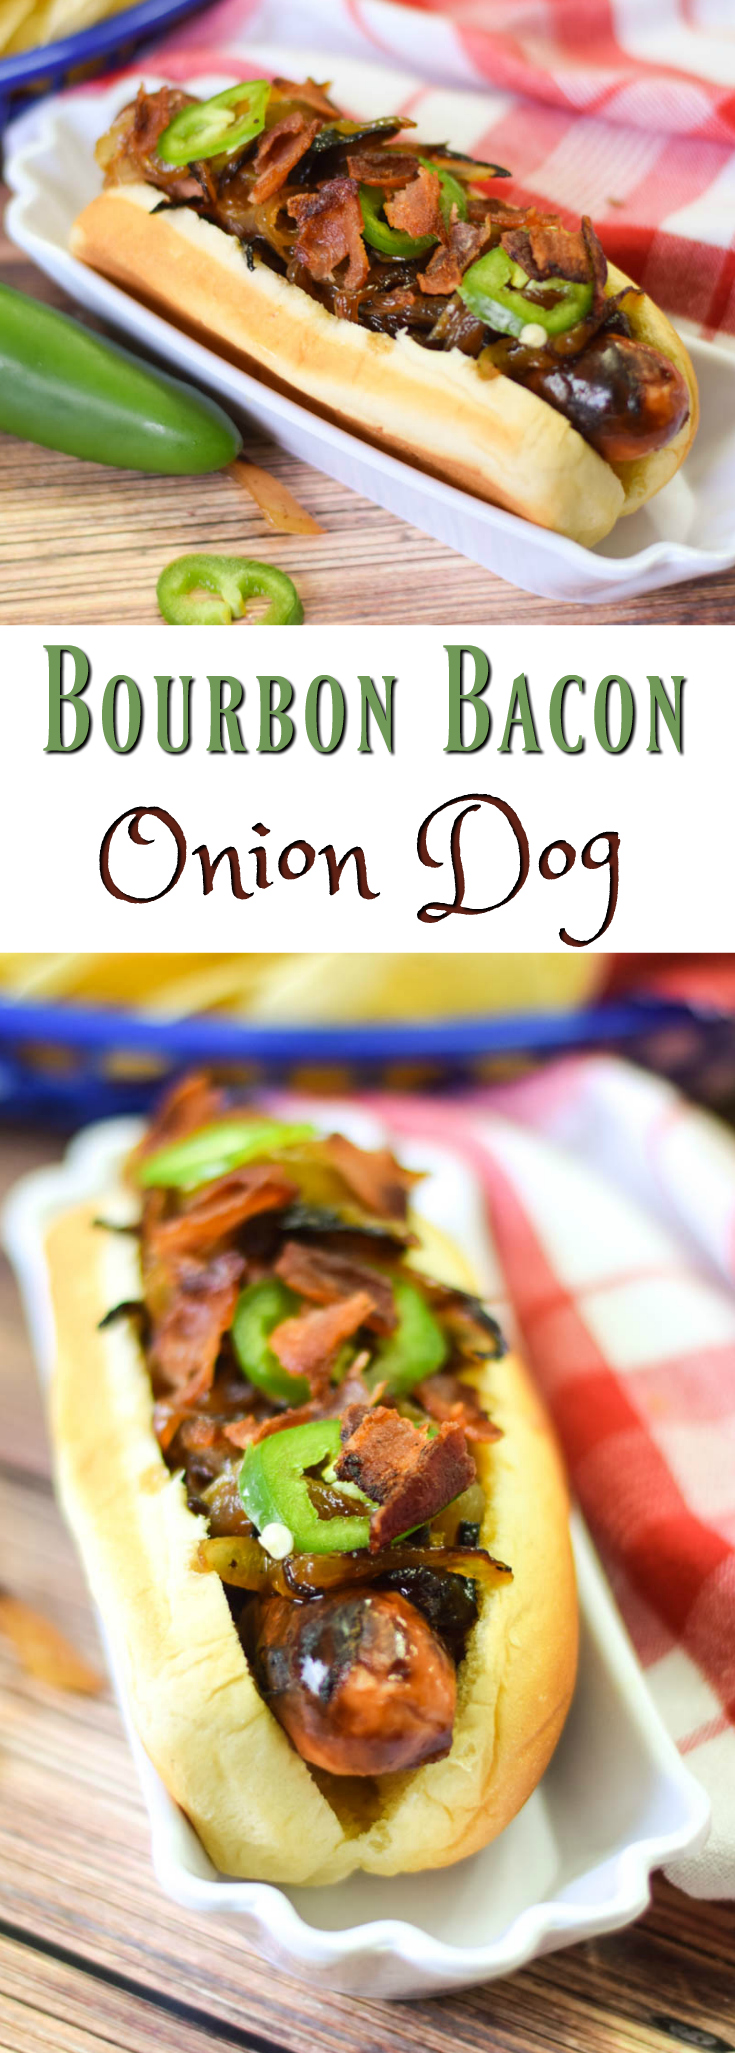 Bourbon Bacon Onion Dog